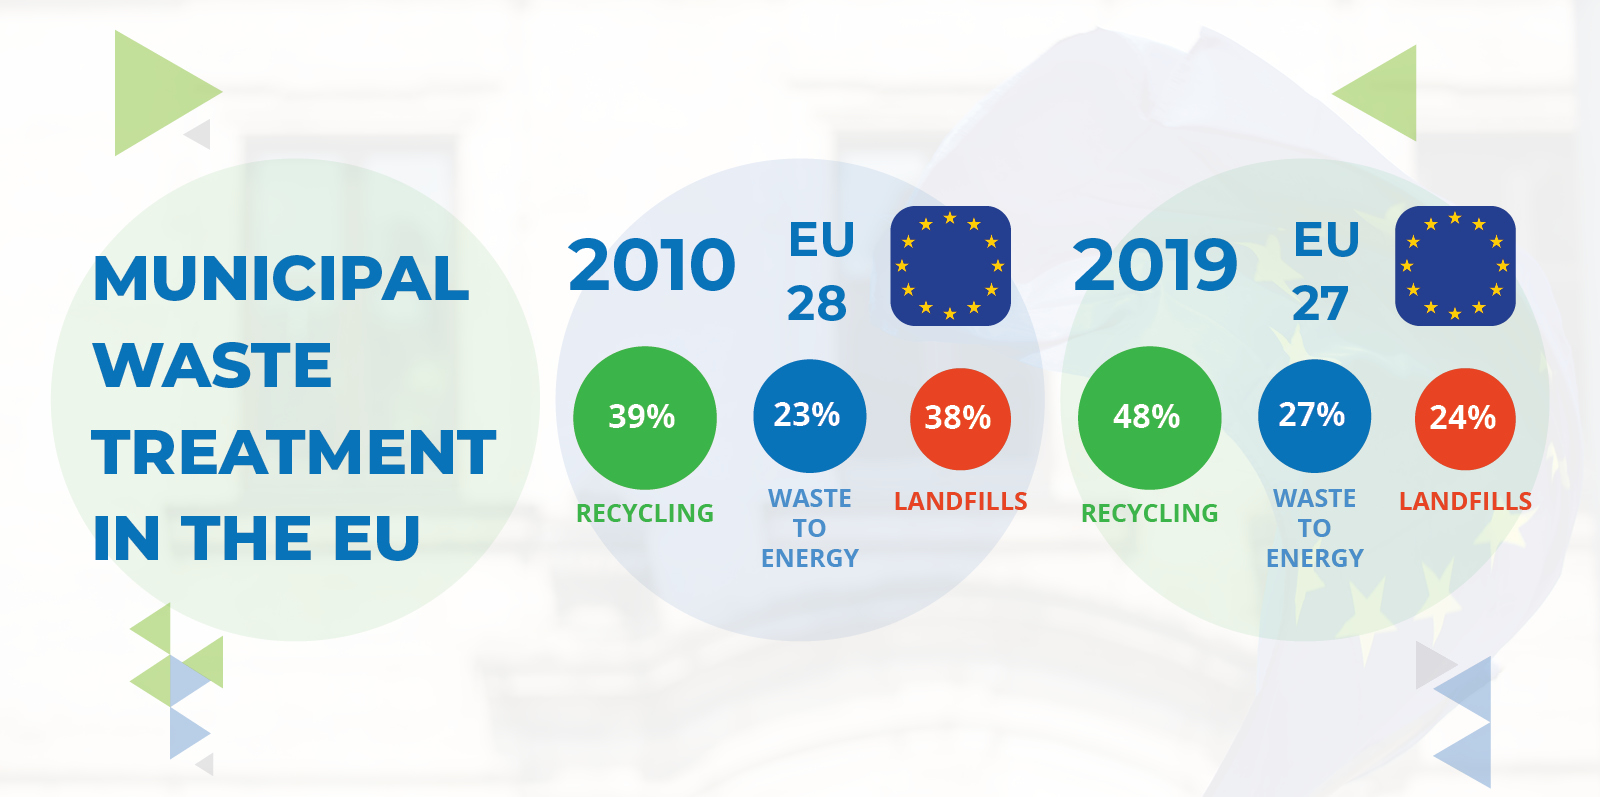 Fact Sheet_Municipal Waste Treatment in the EU_2021_Cover for Website News